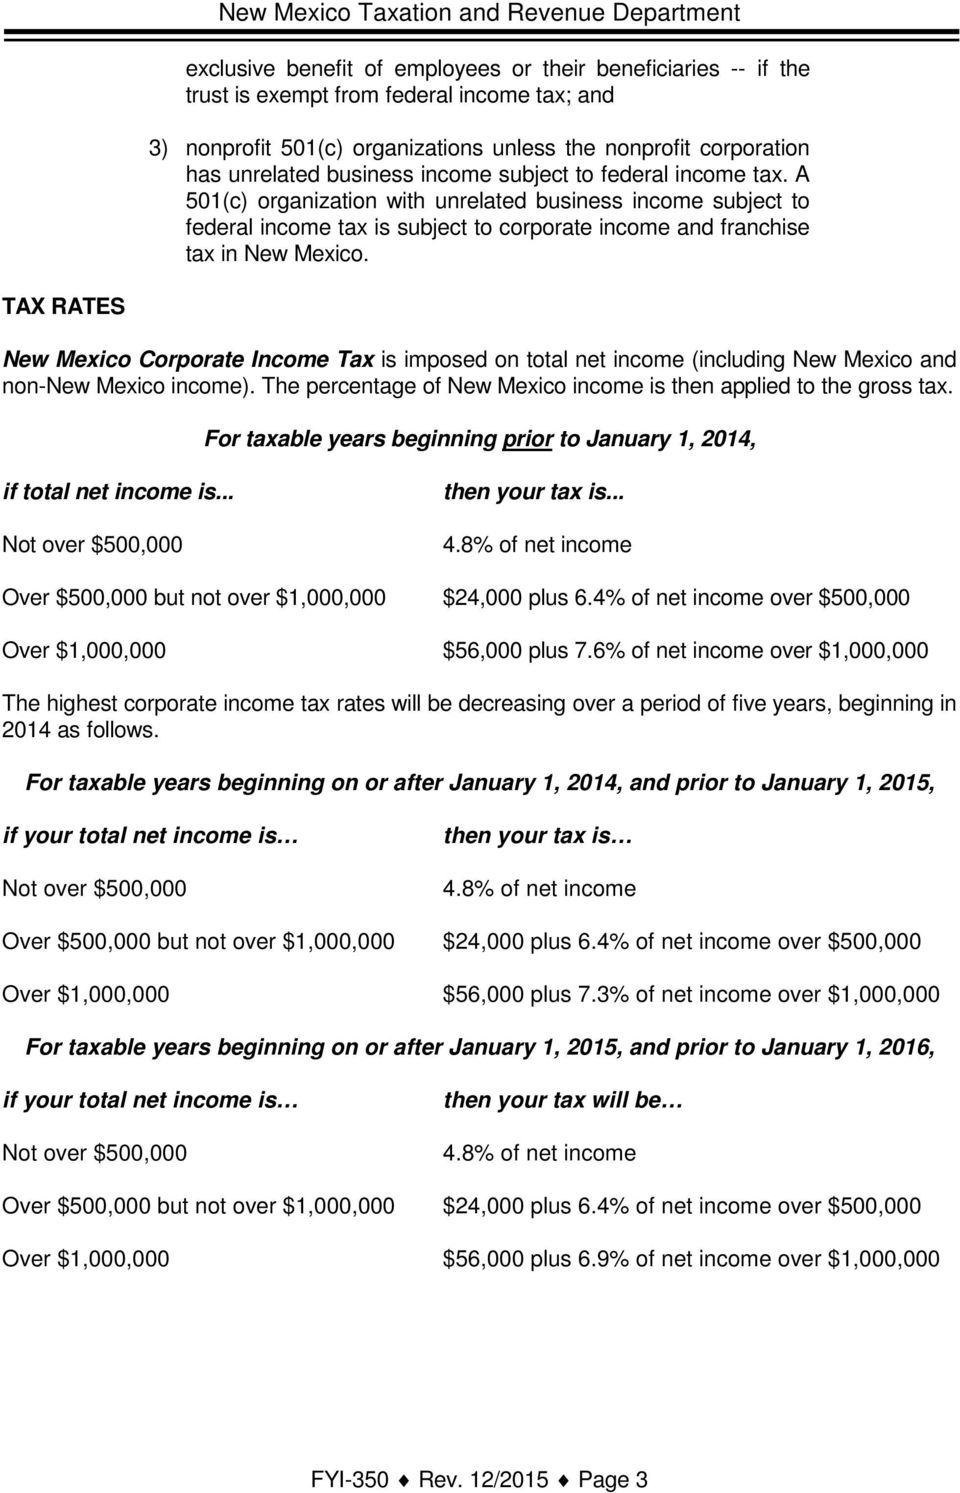 TAX RATES New Mexico Corporate Income Tax is imposed on total net income (including New Mexico and non-new Mexico income). The percentage of New Mexico income is then applied to the gross tax.